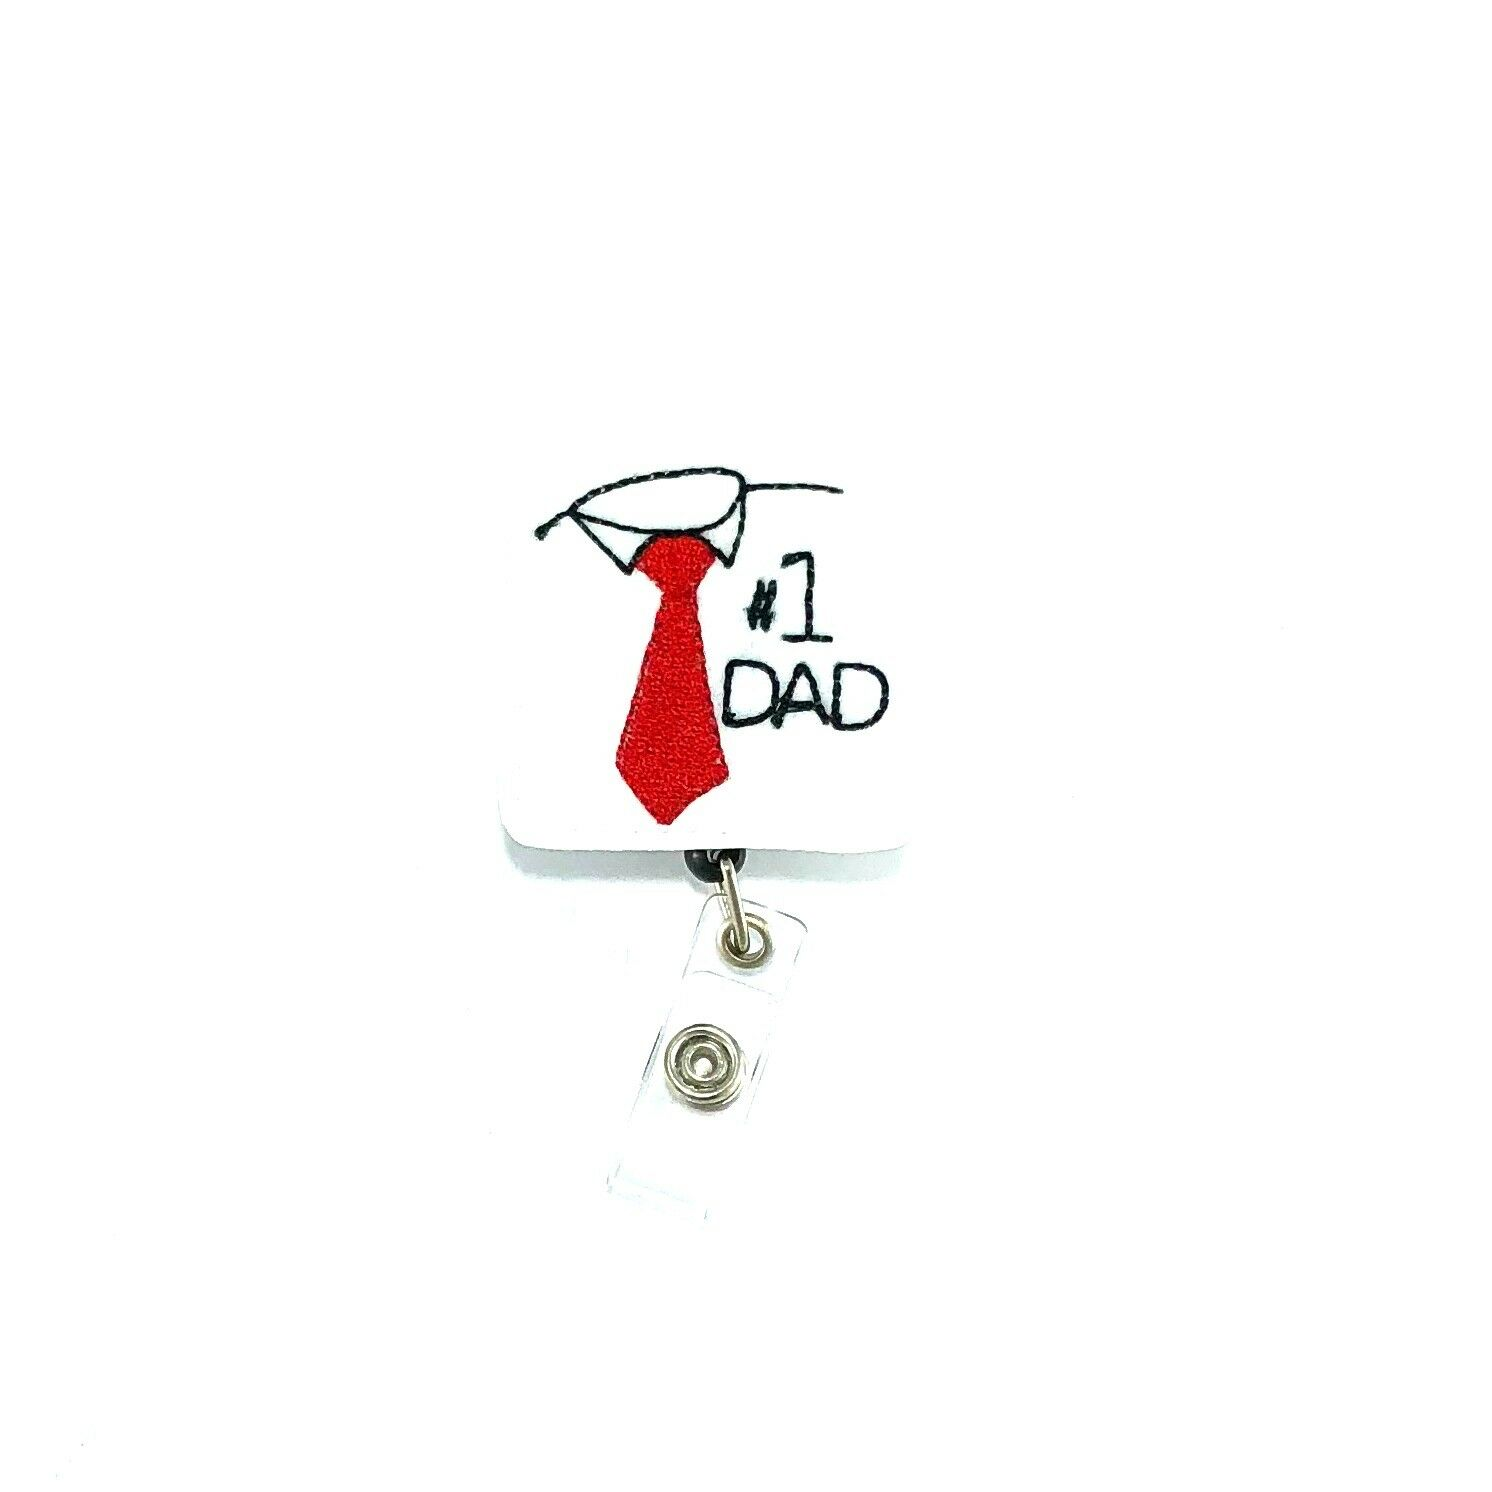 #1 Dad Badge Reel Holder Clip Fathers Day Gift Present ID Name Tag Lanyard Charm